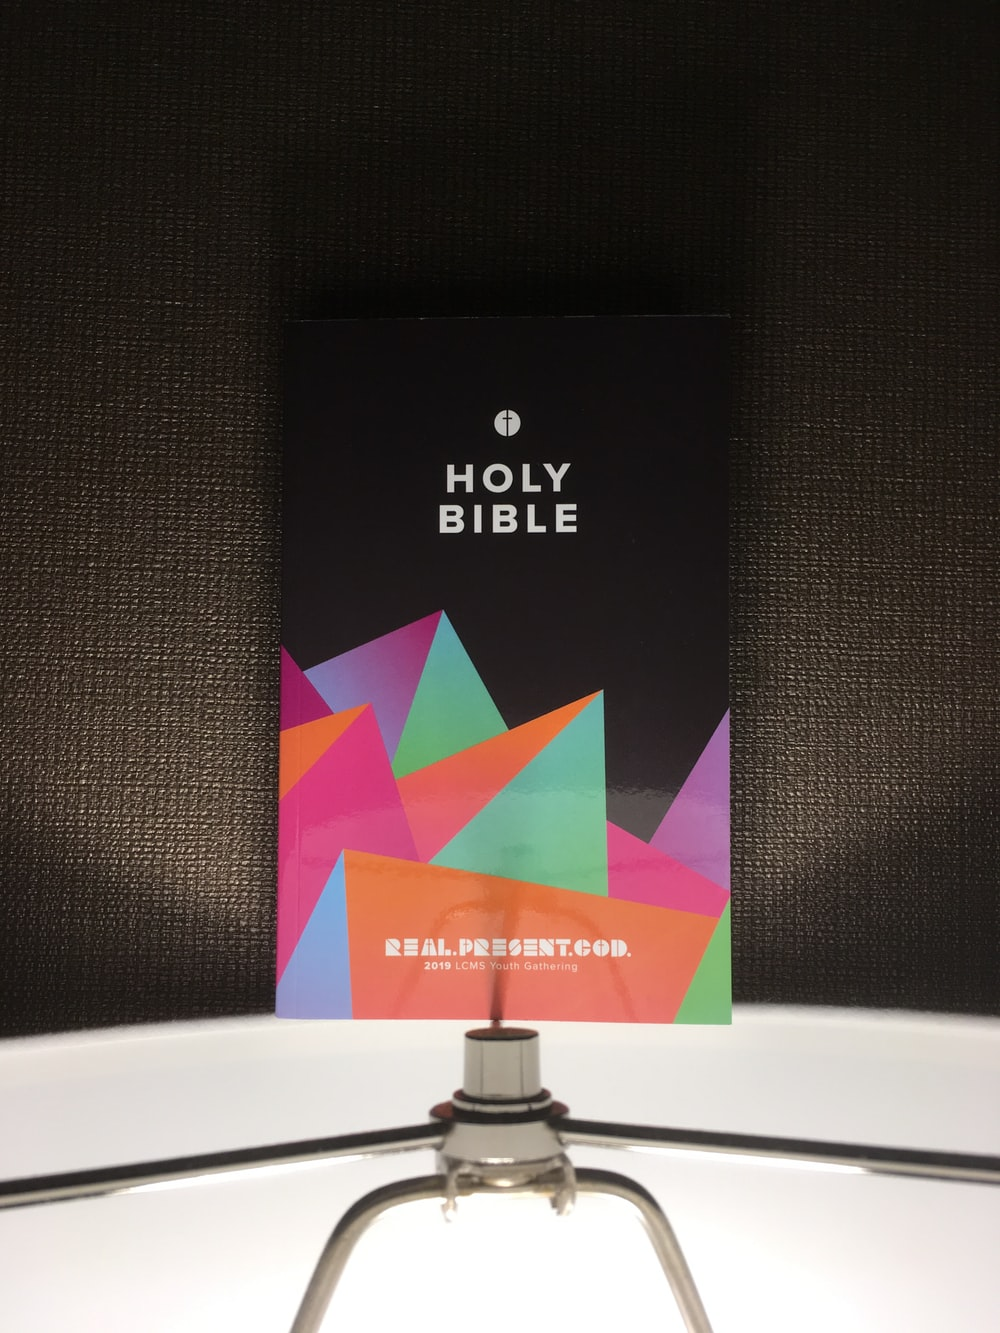 Holy Bible book on black textile